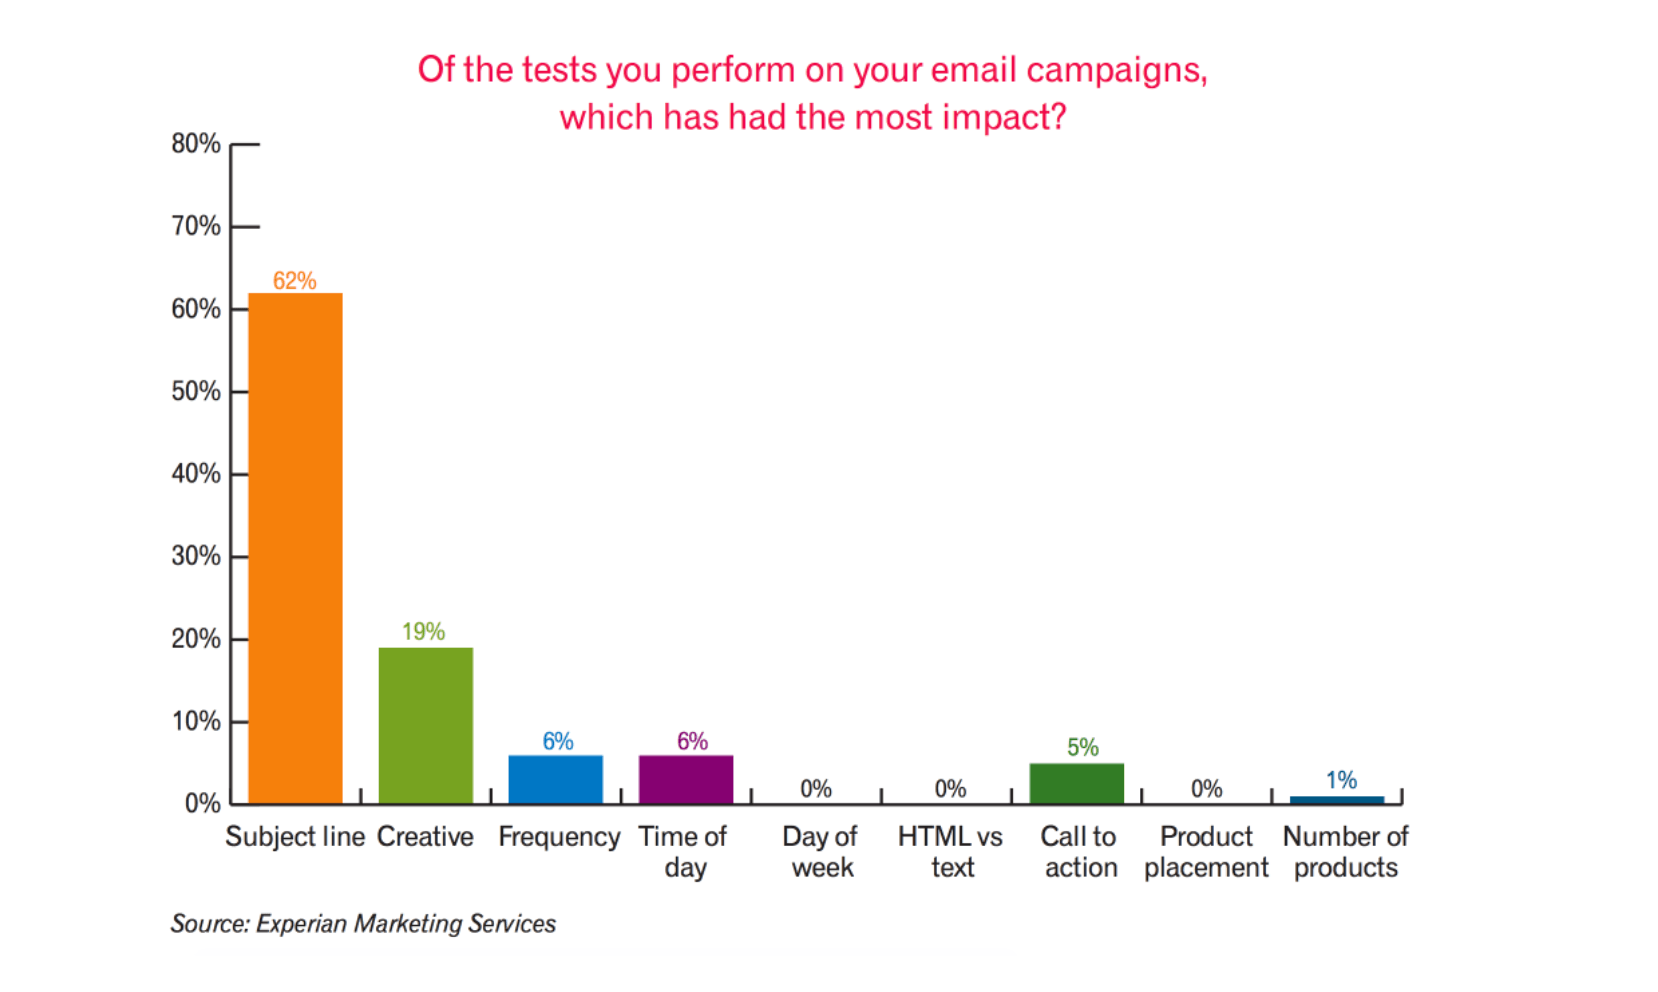 Which email marketing test bring the most impact?